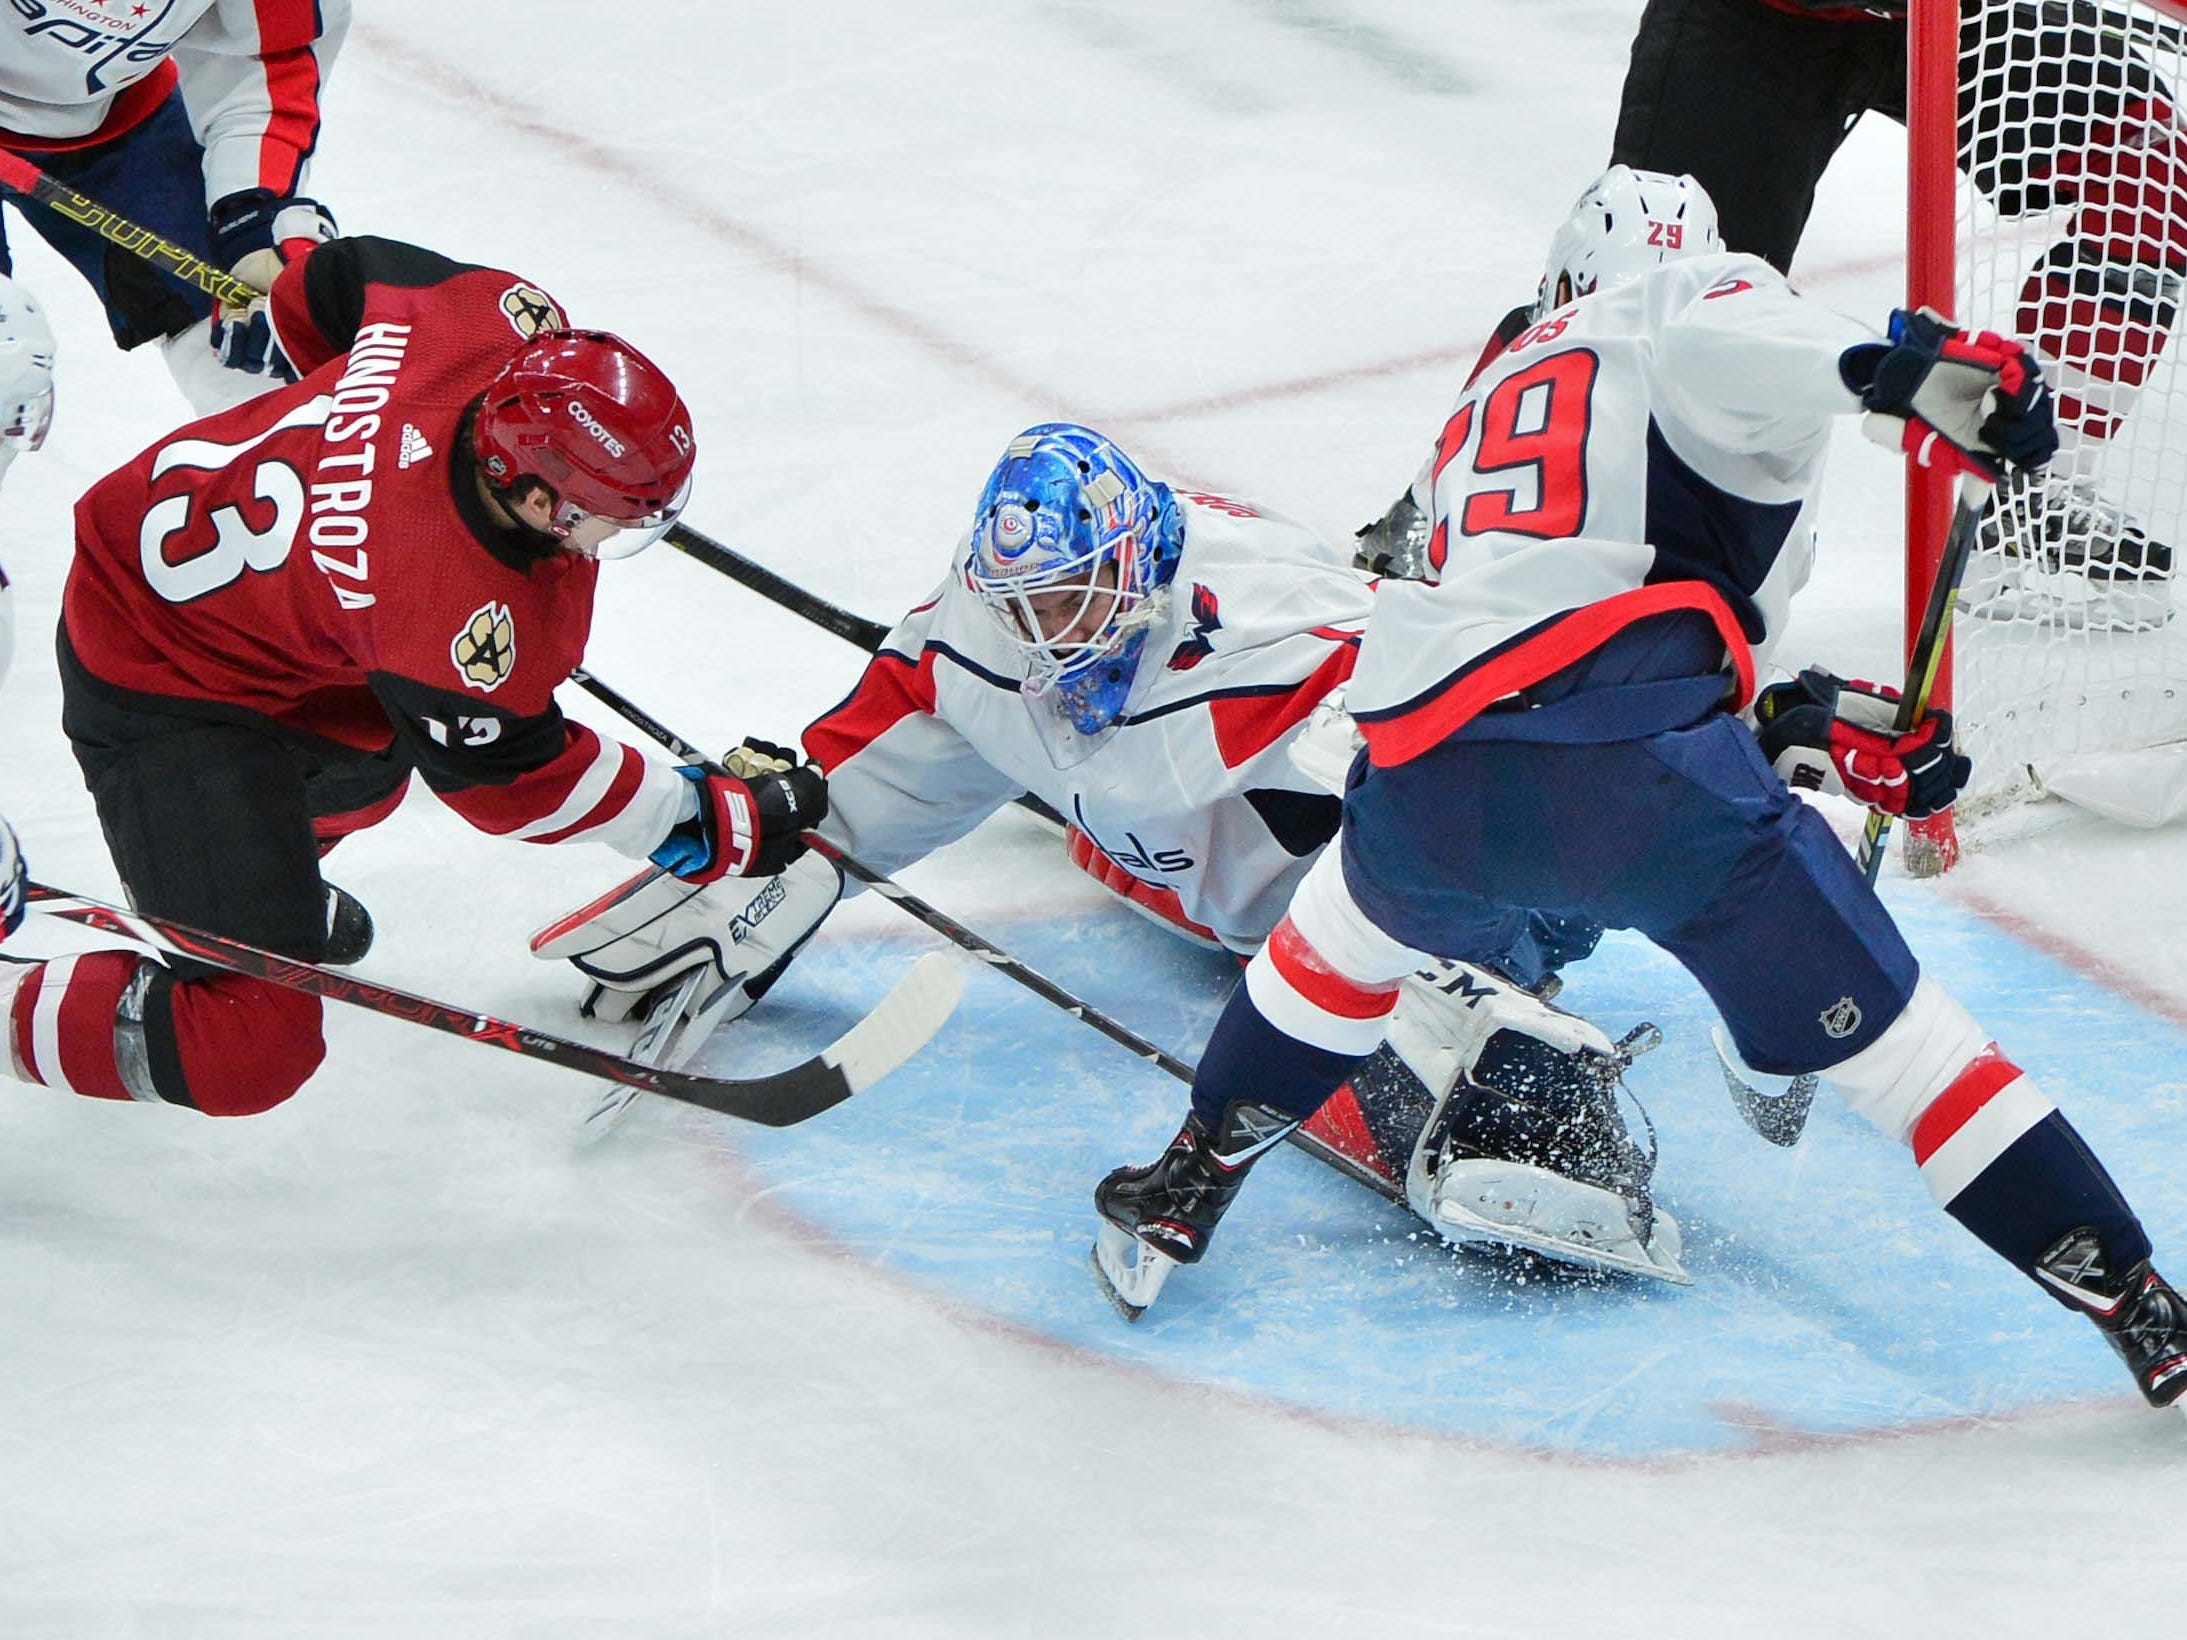 Dec 6, 2018; Glendale, AZ, USA; Washington Capitals left wing Jakub Vrana (13) moves for the puck as Washington Capitals goaltender Pheonix Copley (1) defends during the first period at Gila River Arena. Mandatory Credit: Matt Kartozian-USA TODAY Sports